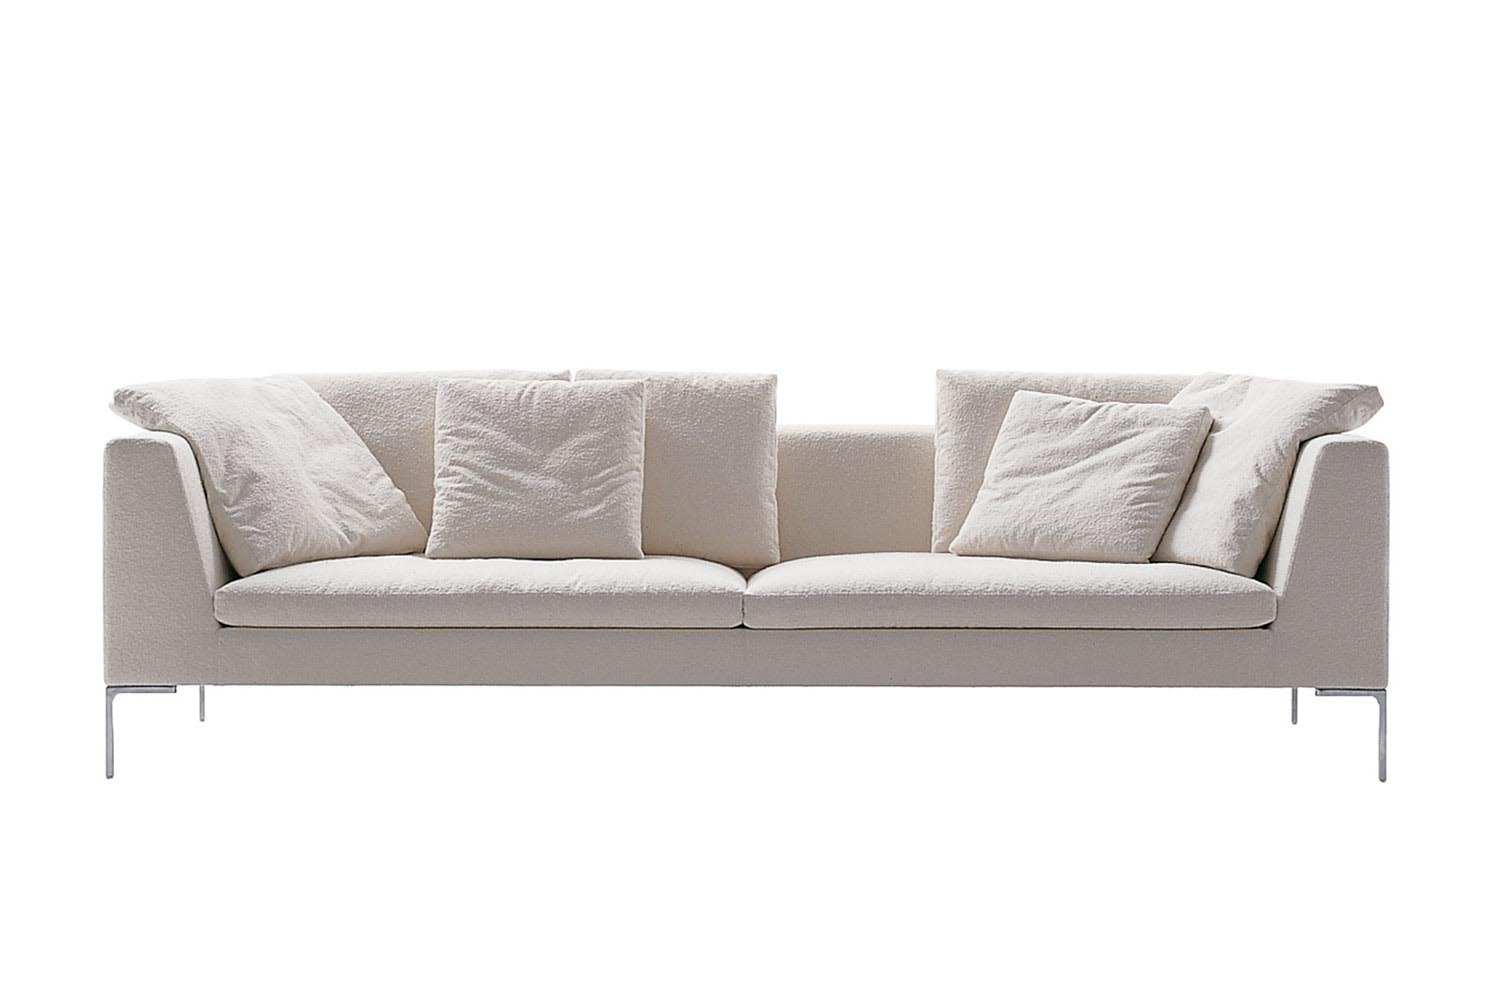 Charles Large Sofa by Antonio Citterio for B&B Italia